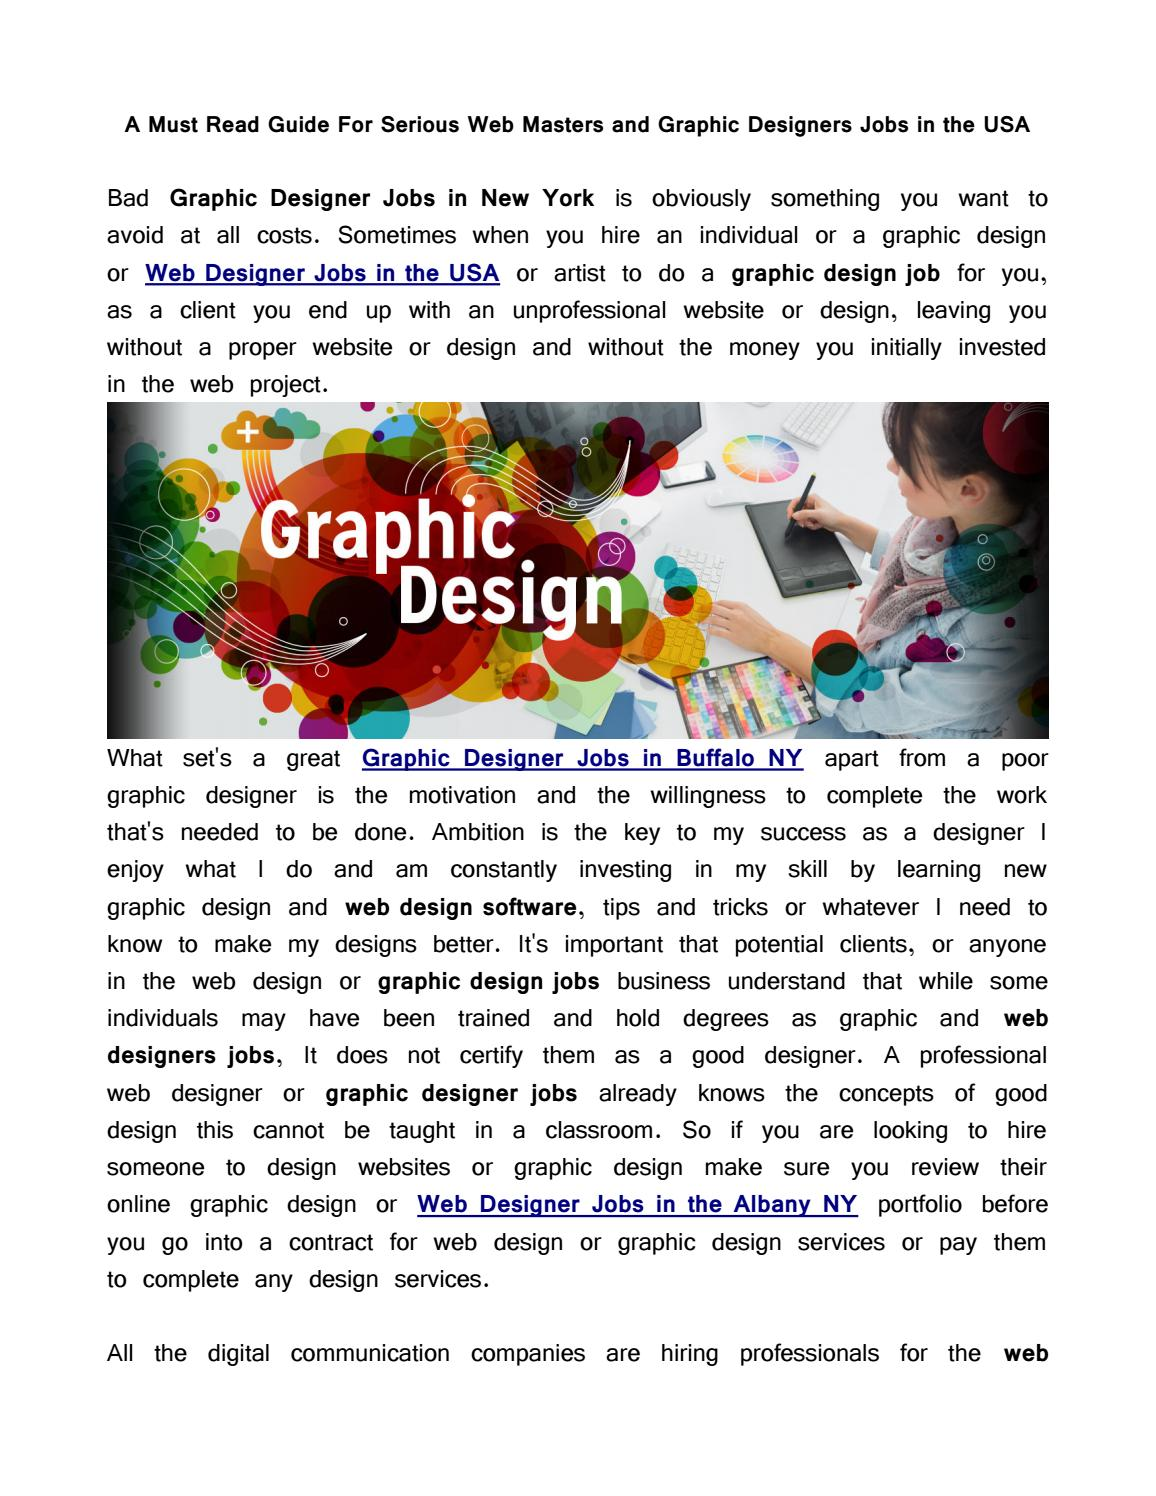 A Must Read Guide For Serious Web Masters And Graphic Designers Jobs In The Usa By Biphoo